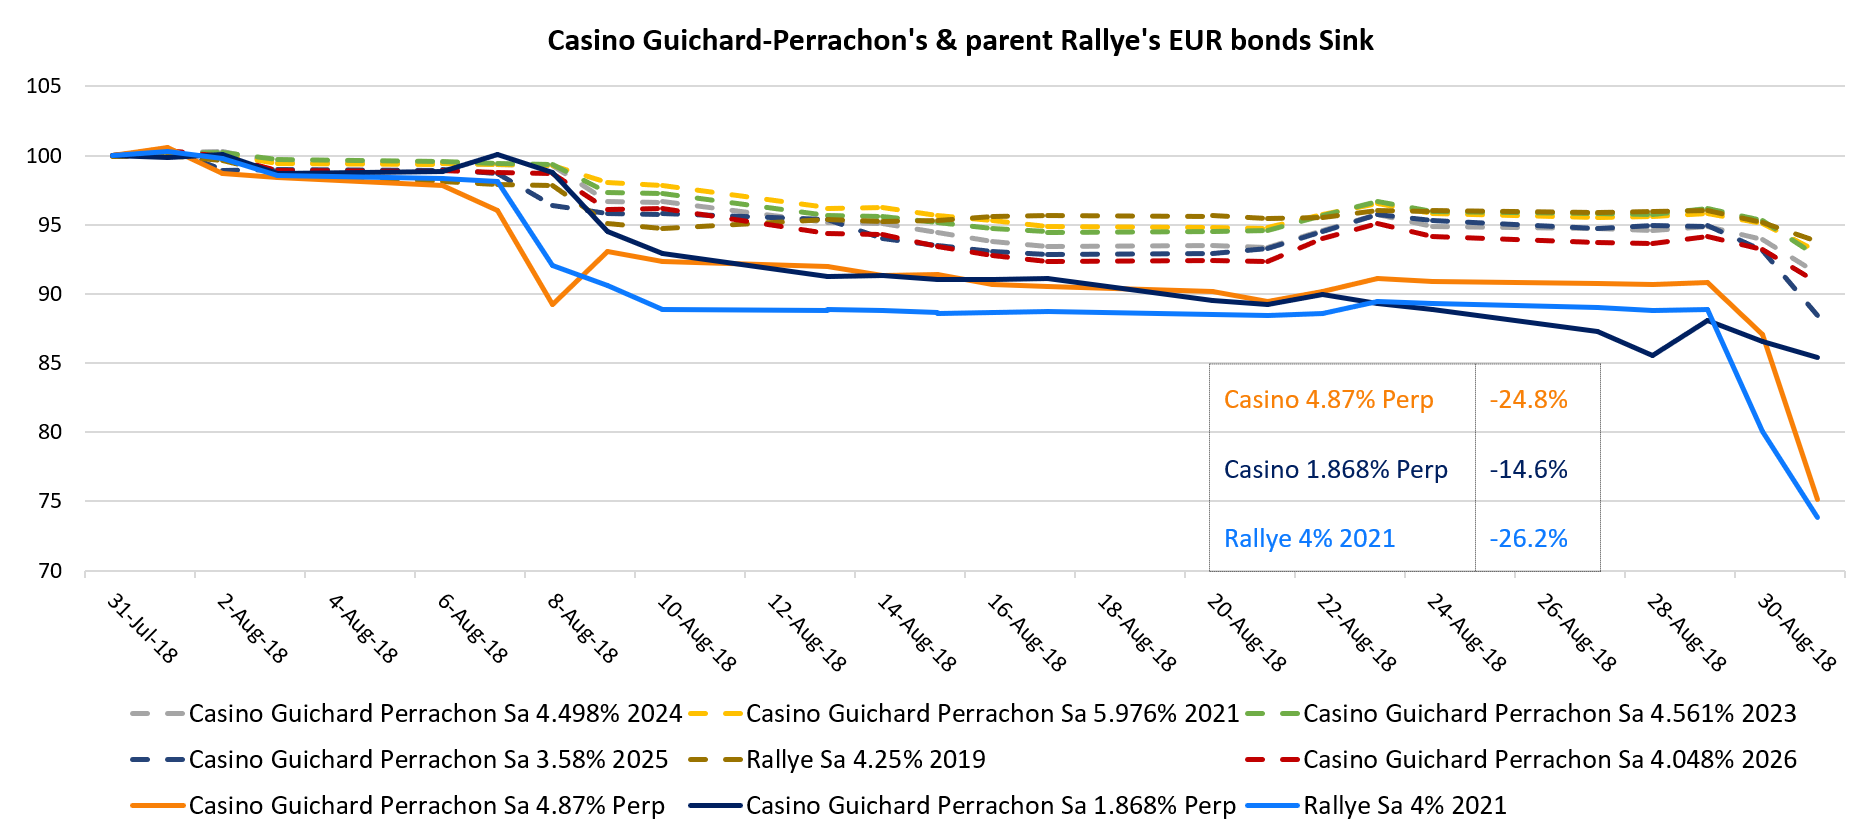 Casino Guichard-Perrachon Bonds